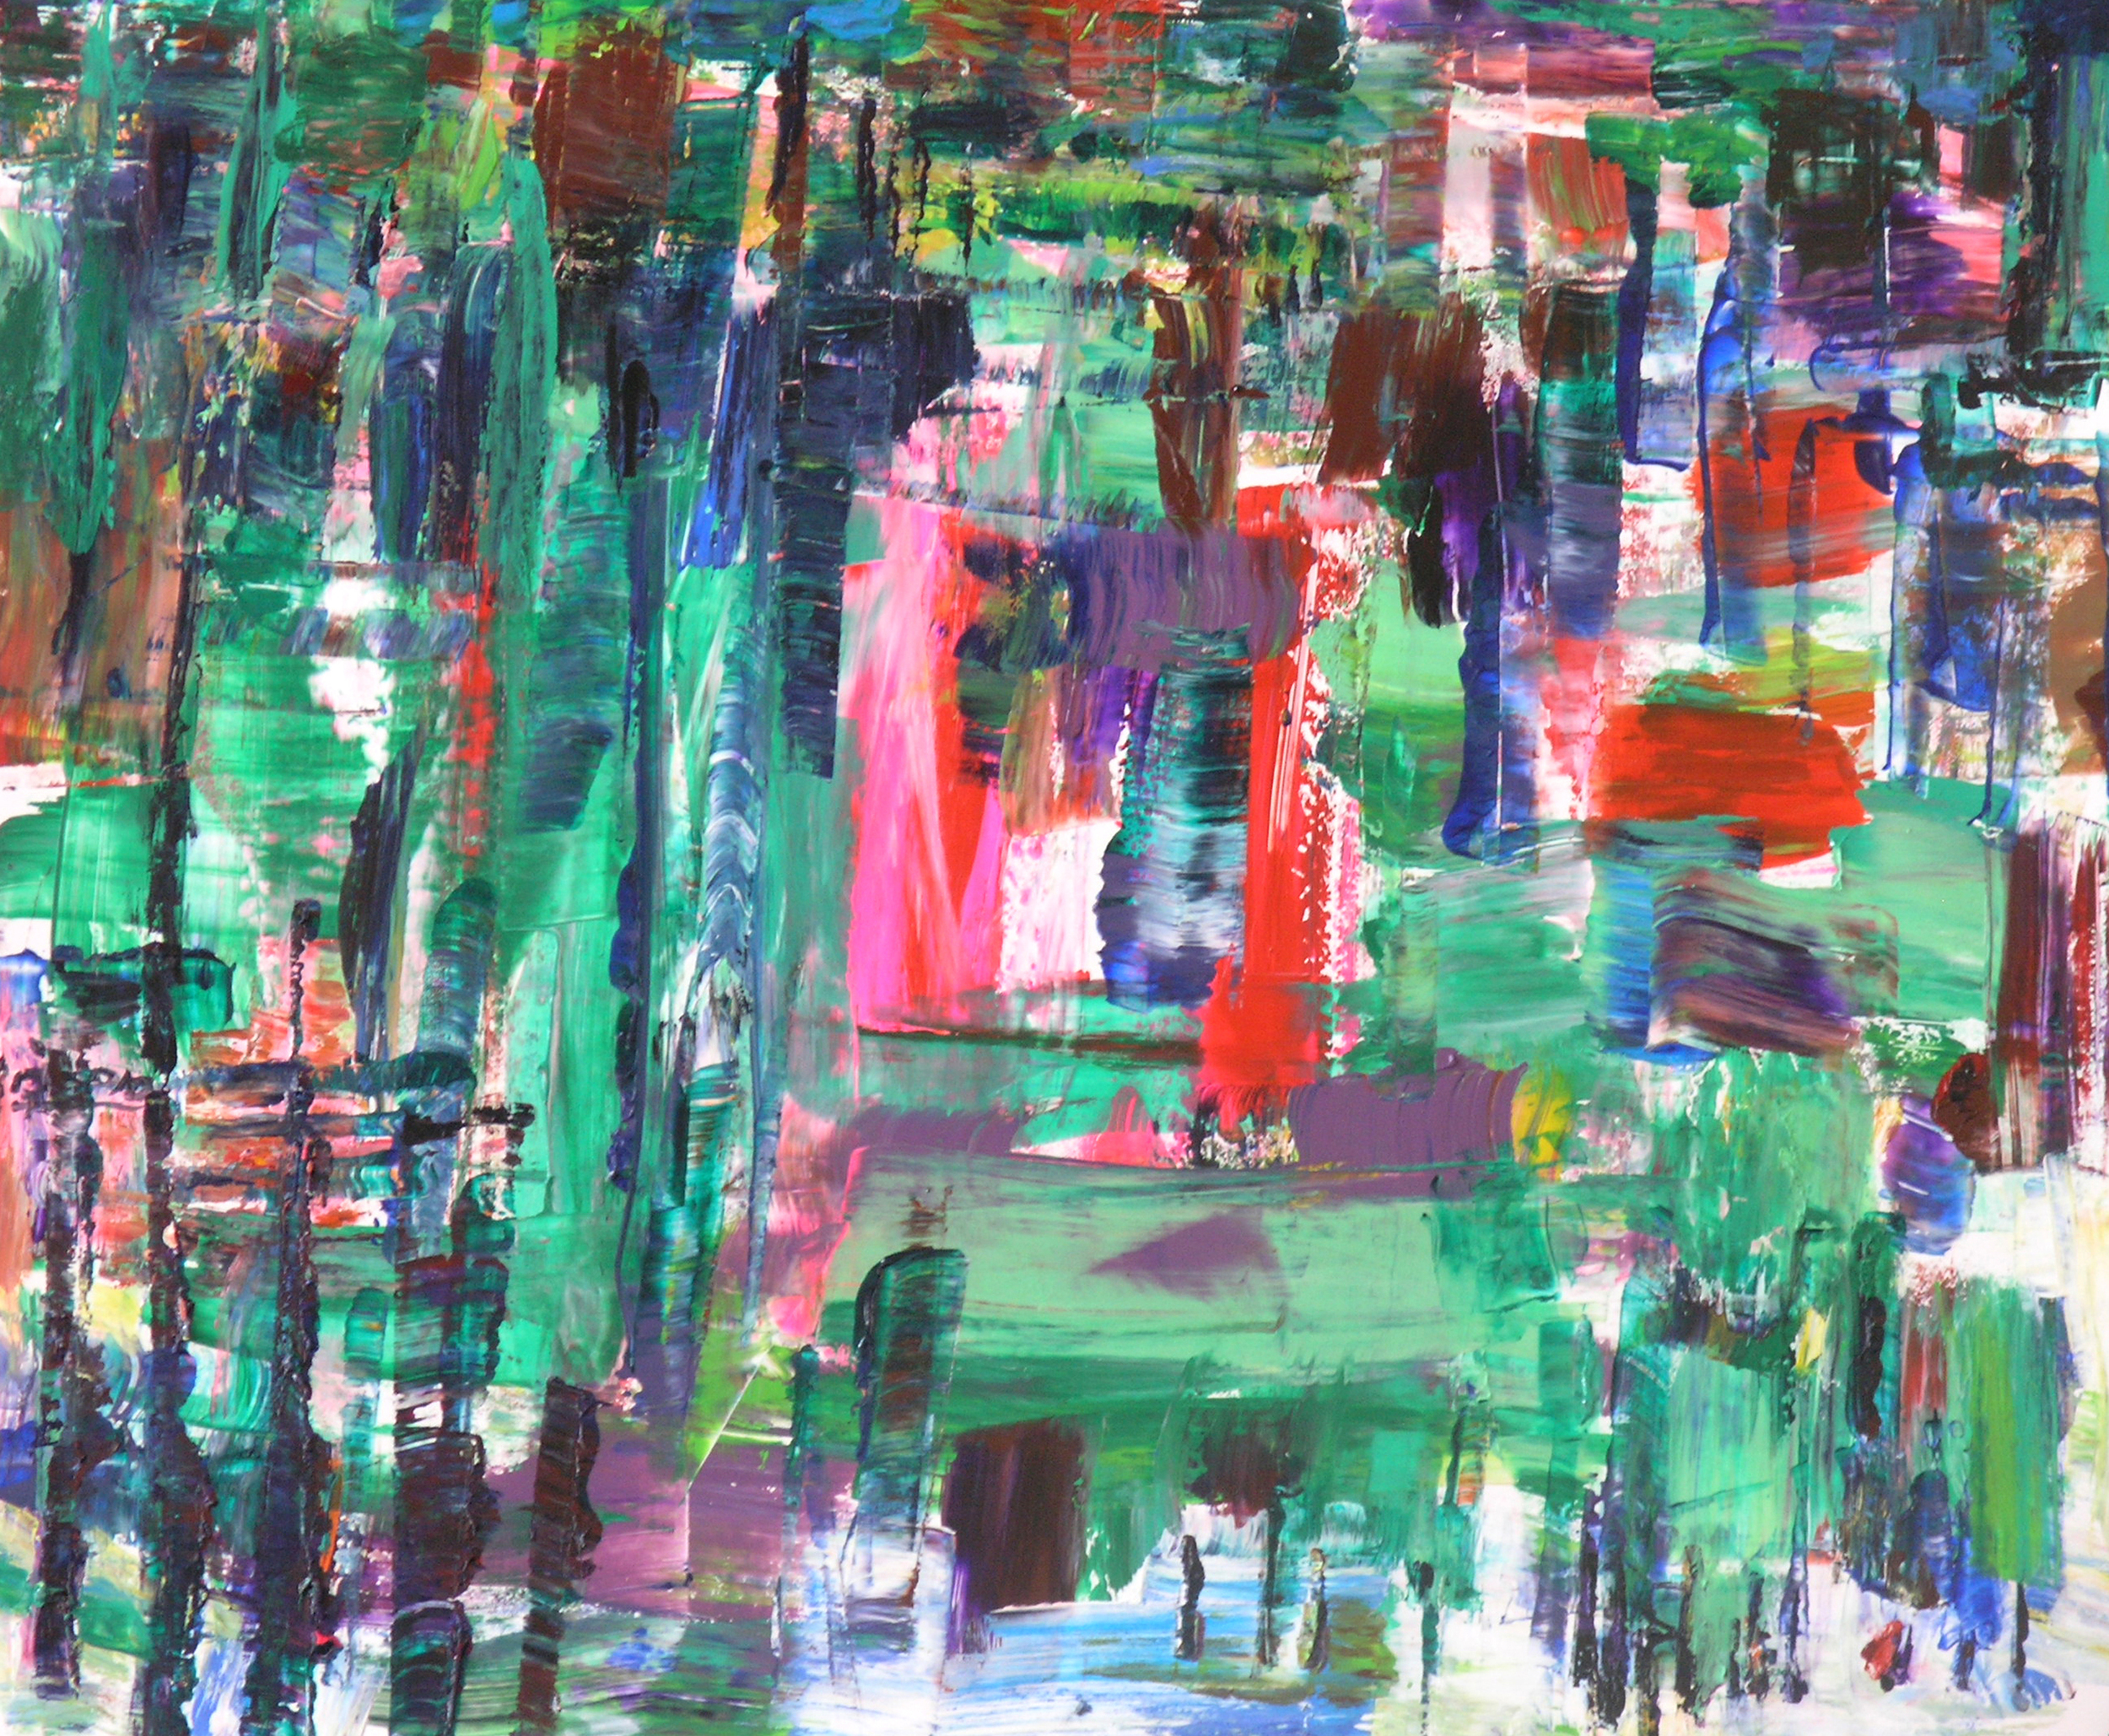 """Wei Kang  The City in My Heart 08, 2010  Acrylic on canvas  20"""" x 24"""""""